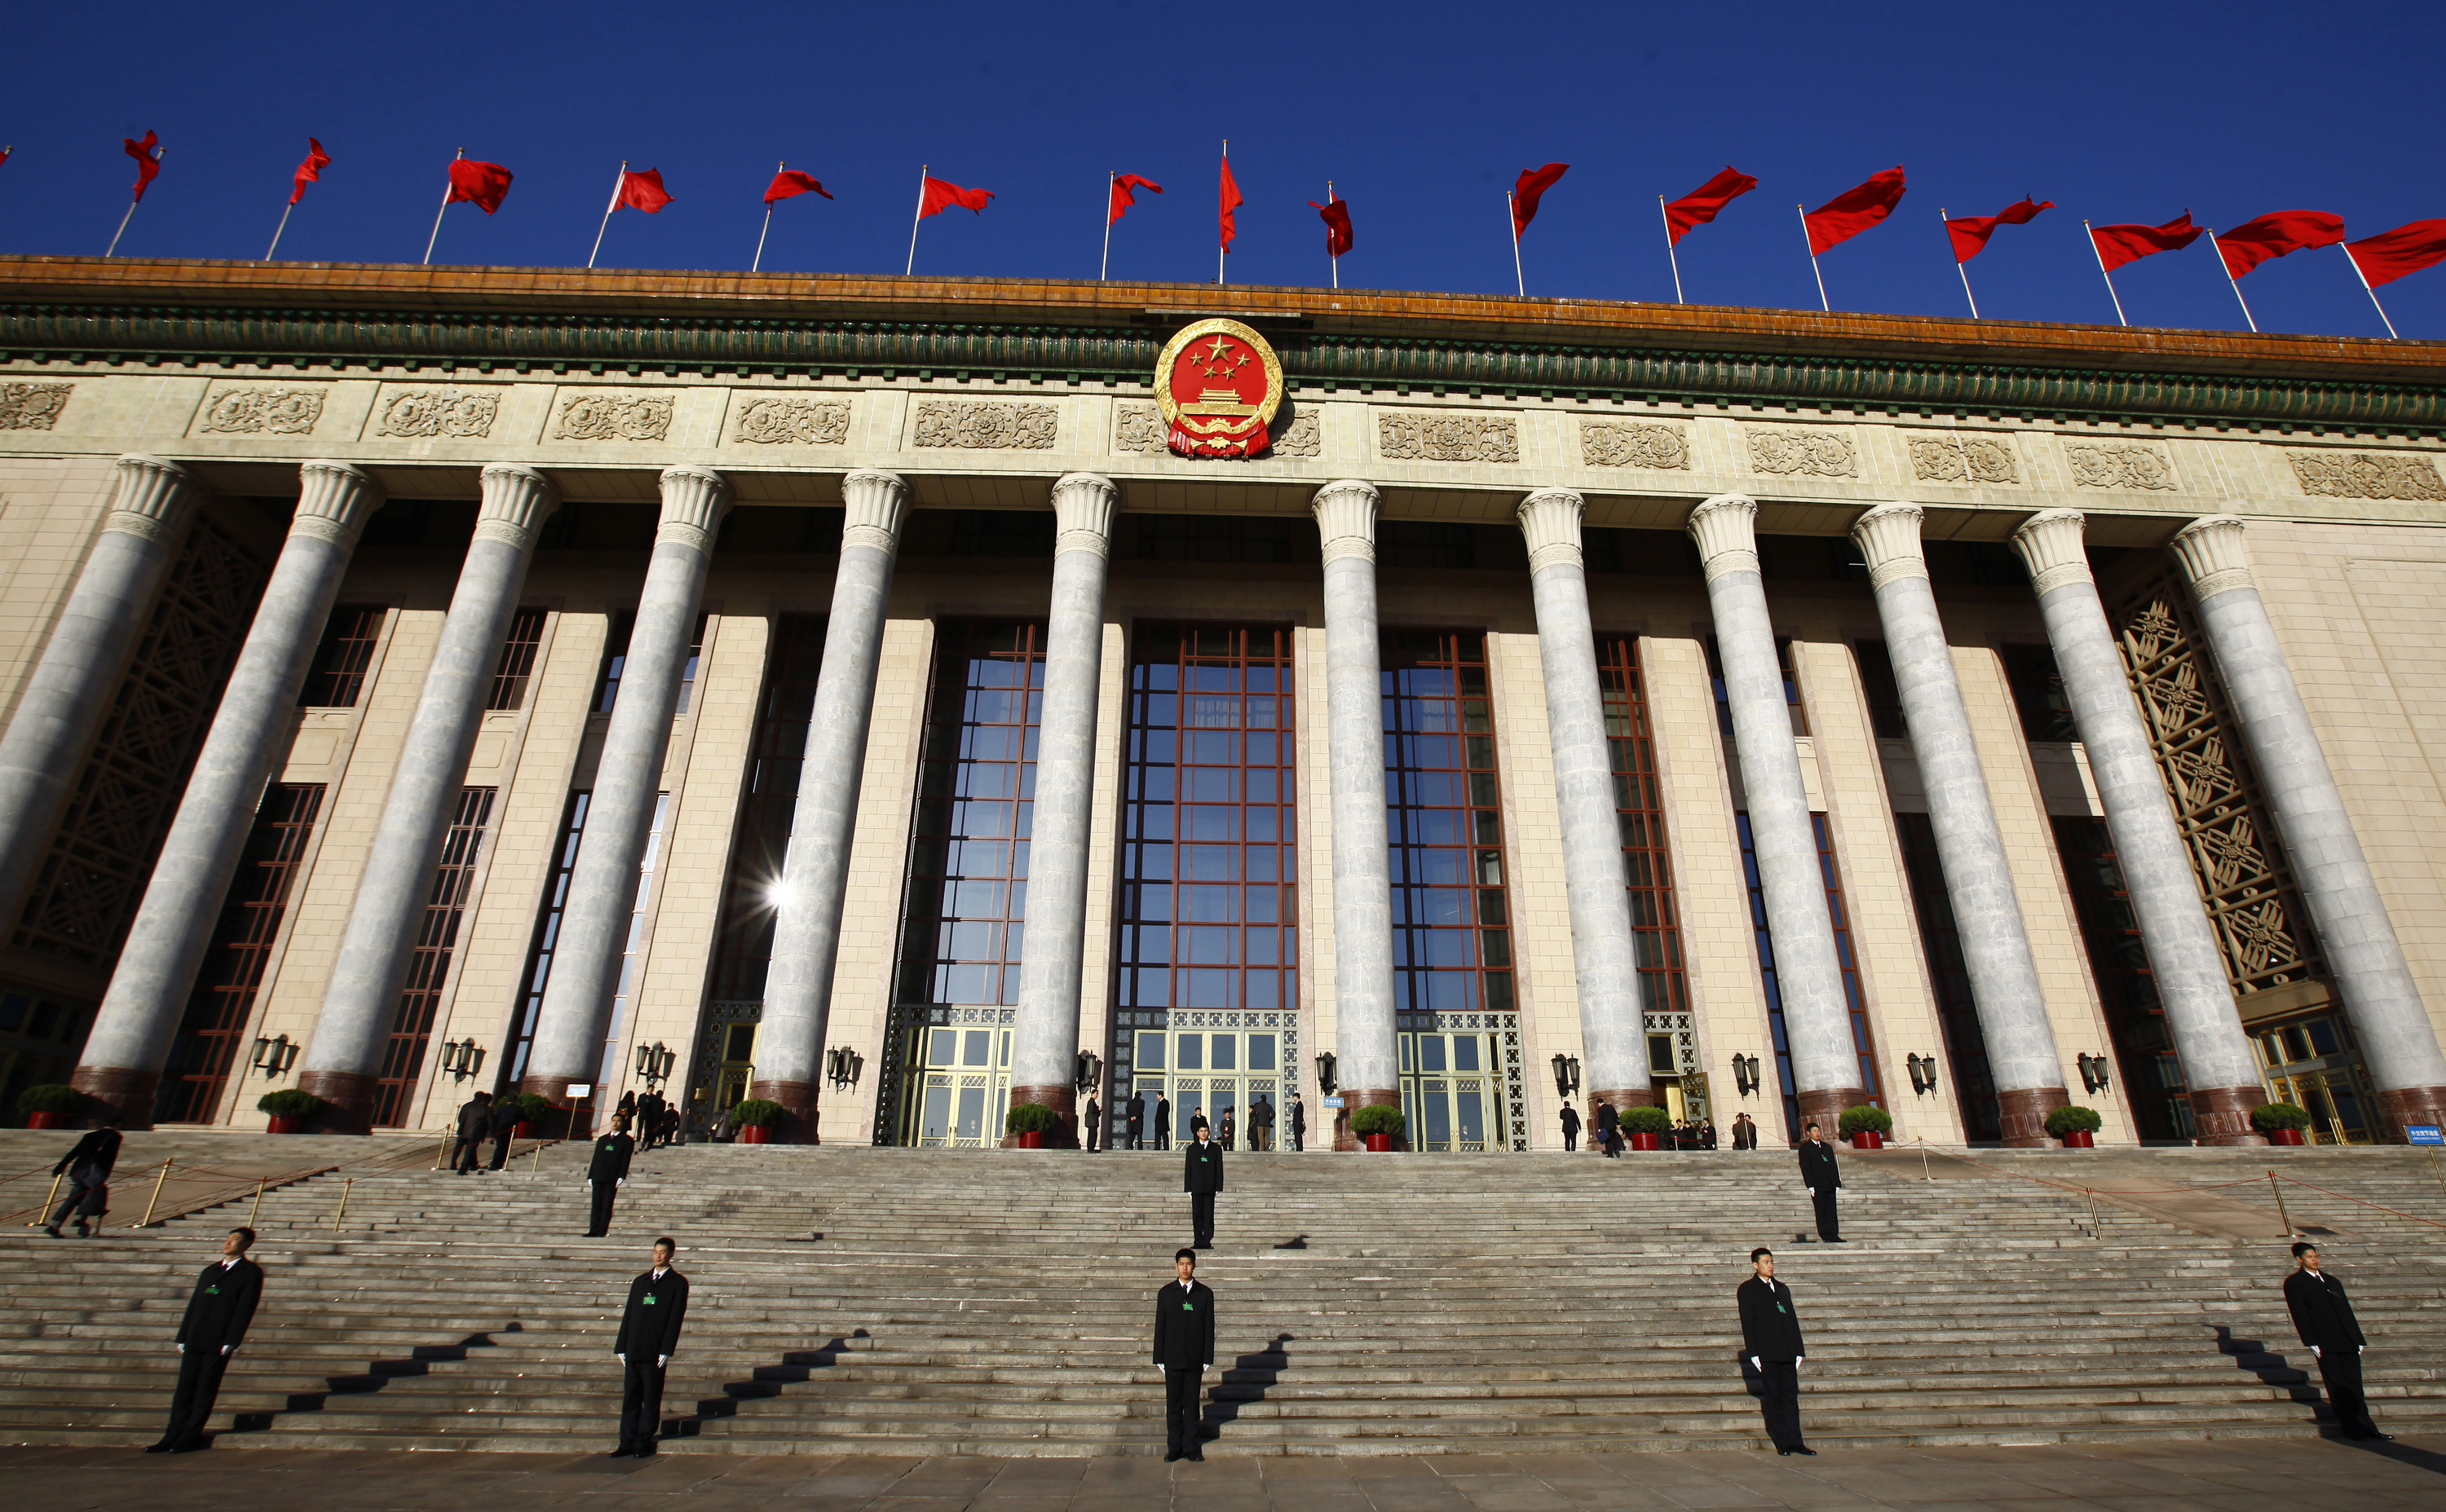 Security officers stand guard outside the Great Hall of the People during the third plenary session of the National People's Congress (NPC) in Beijing March 10, 2013.